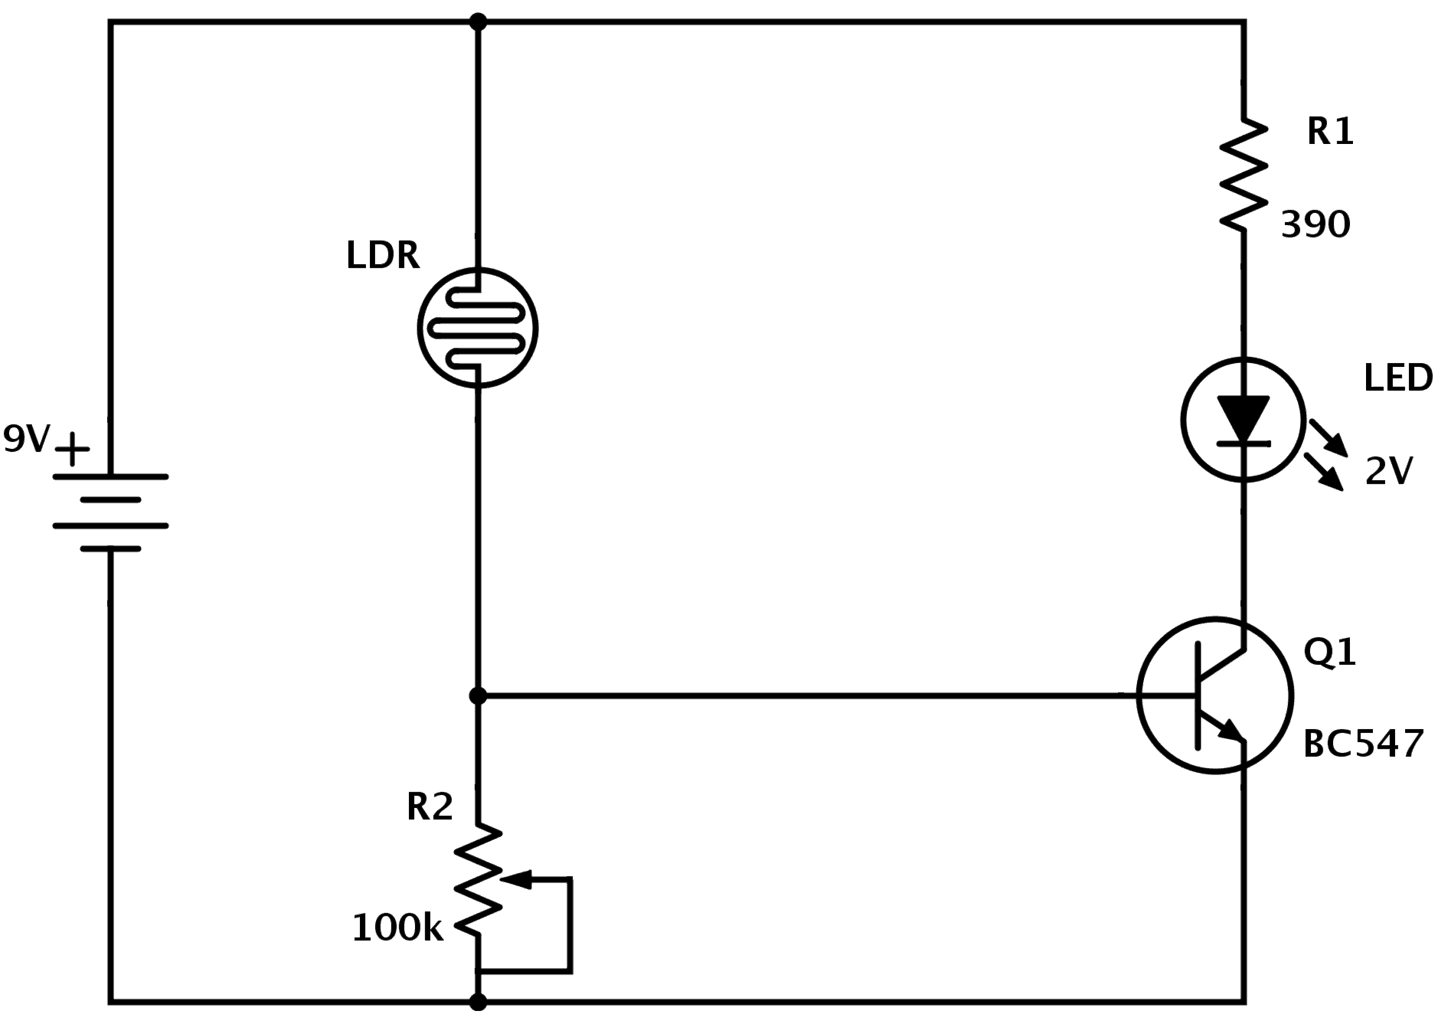 LDR circuit improved circuit diagram how to read and understand any schematic schematic circuit diagram at eliteediting.co